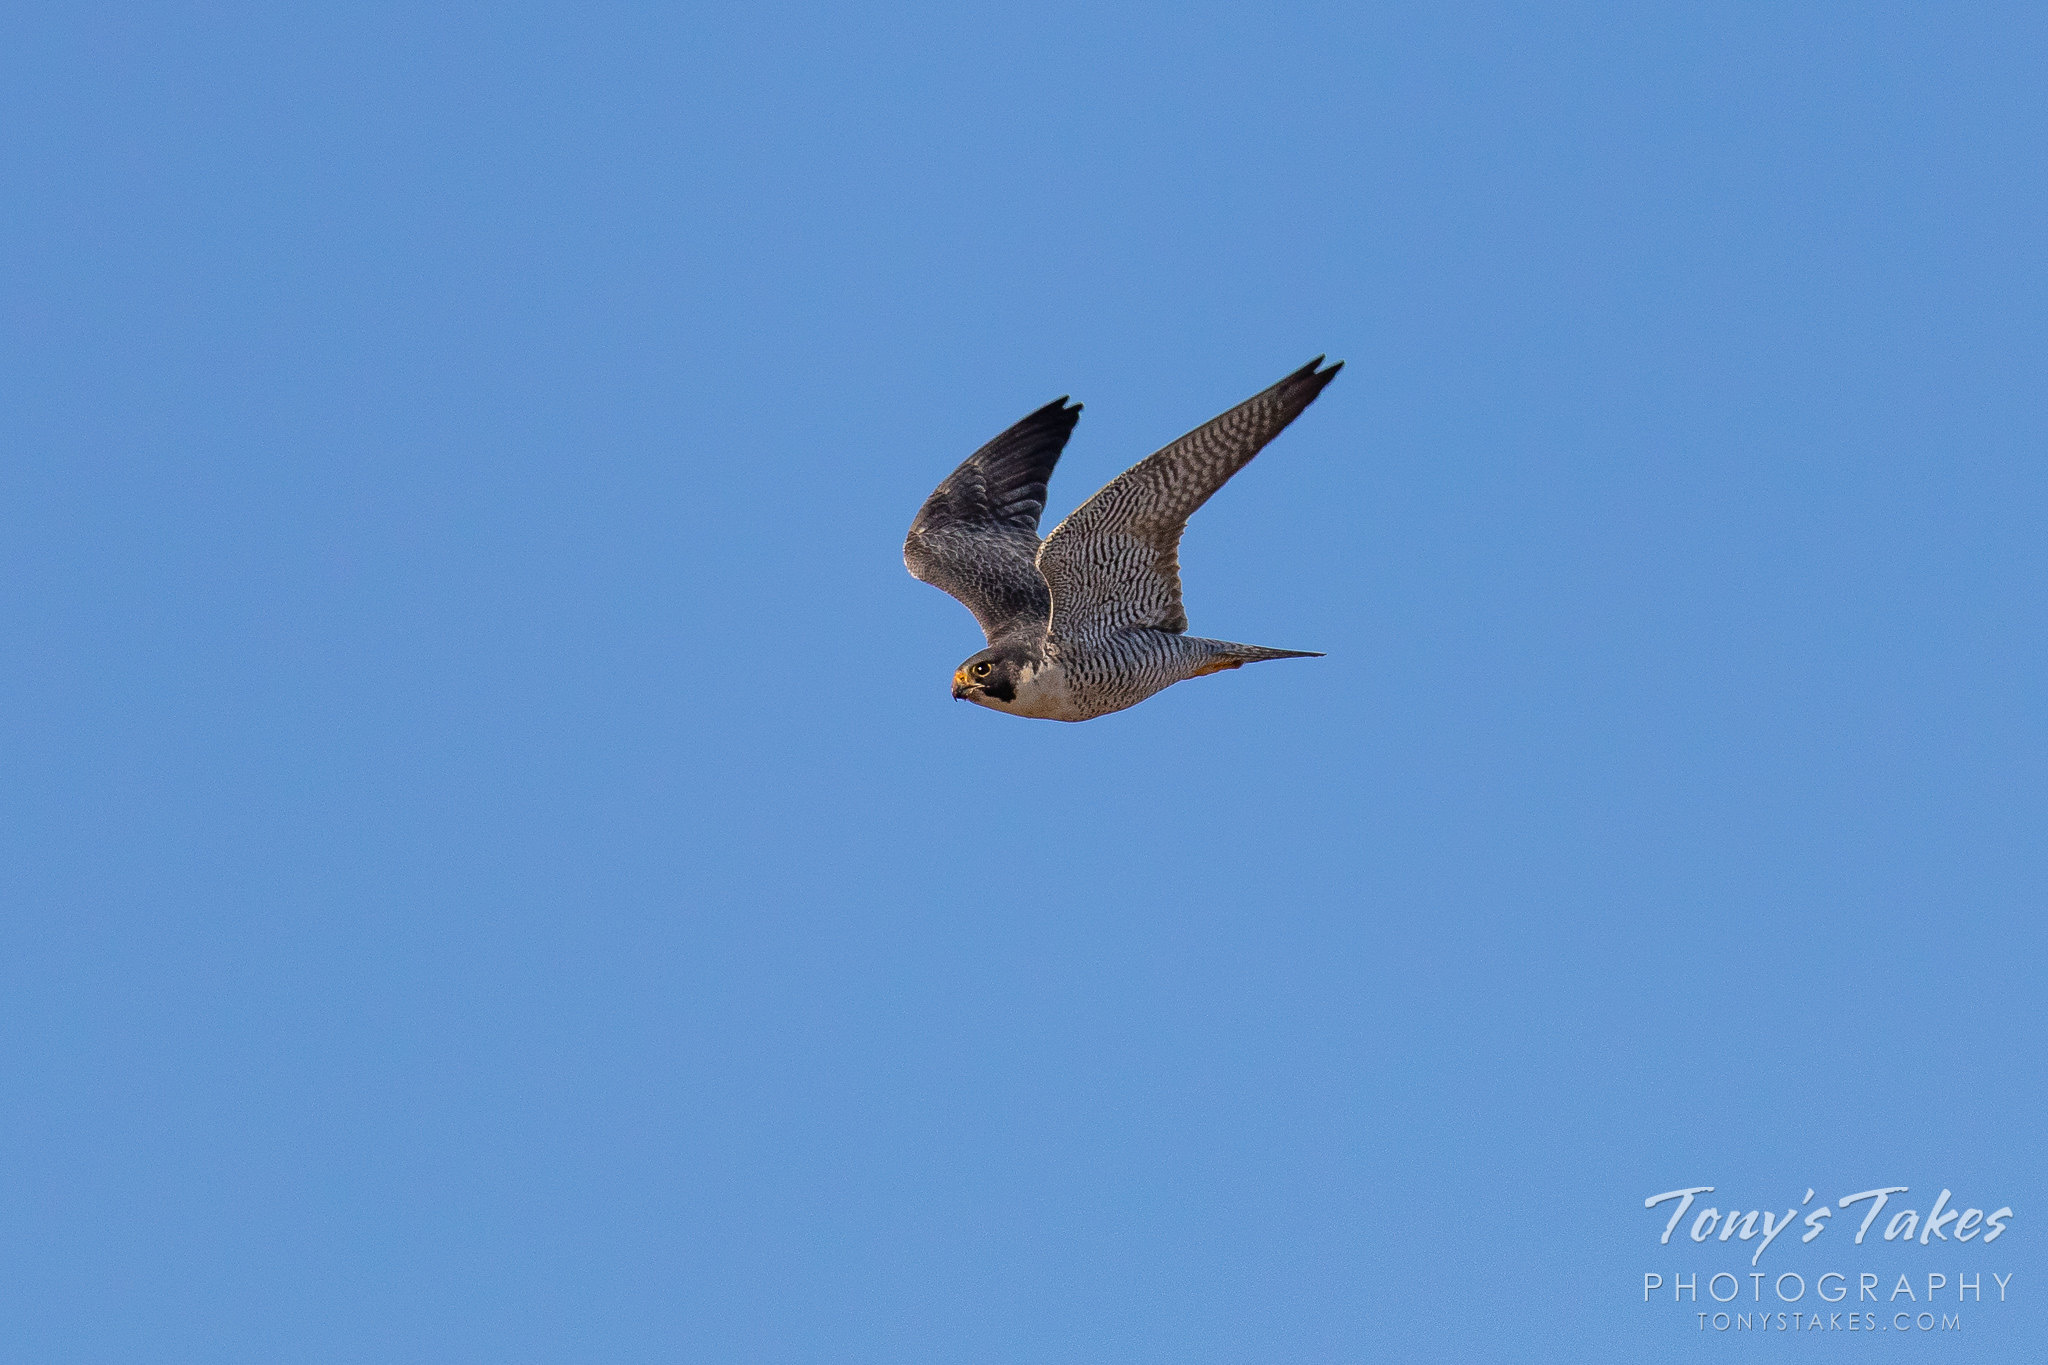 A peregrine falcon makes a fast flyby in Colorado. (© Tony's Takes)